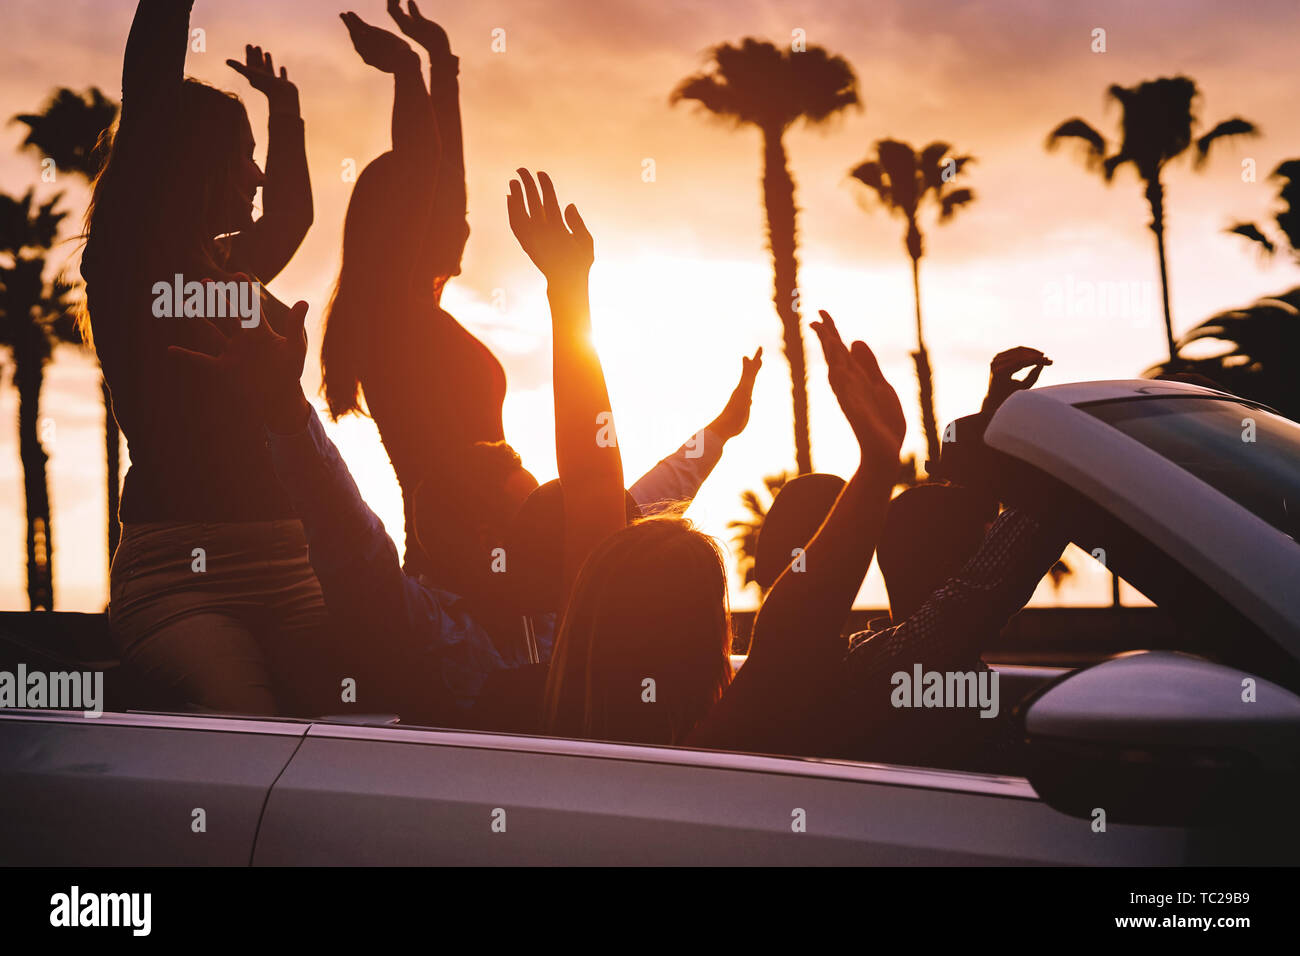 Group Of Friends Having Fun In Convertible Car During Road Trip At Sunset Young Travel People Driving A Cabriolet During Summer Holidays Stock Photo Alamy